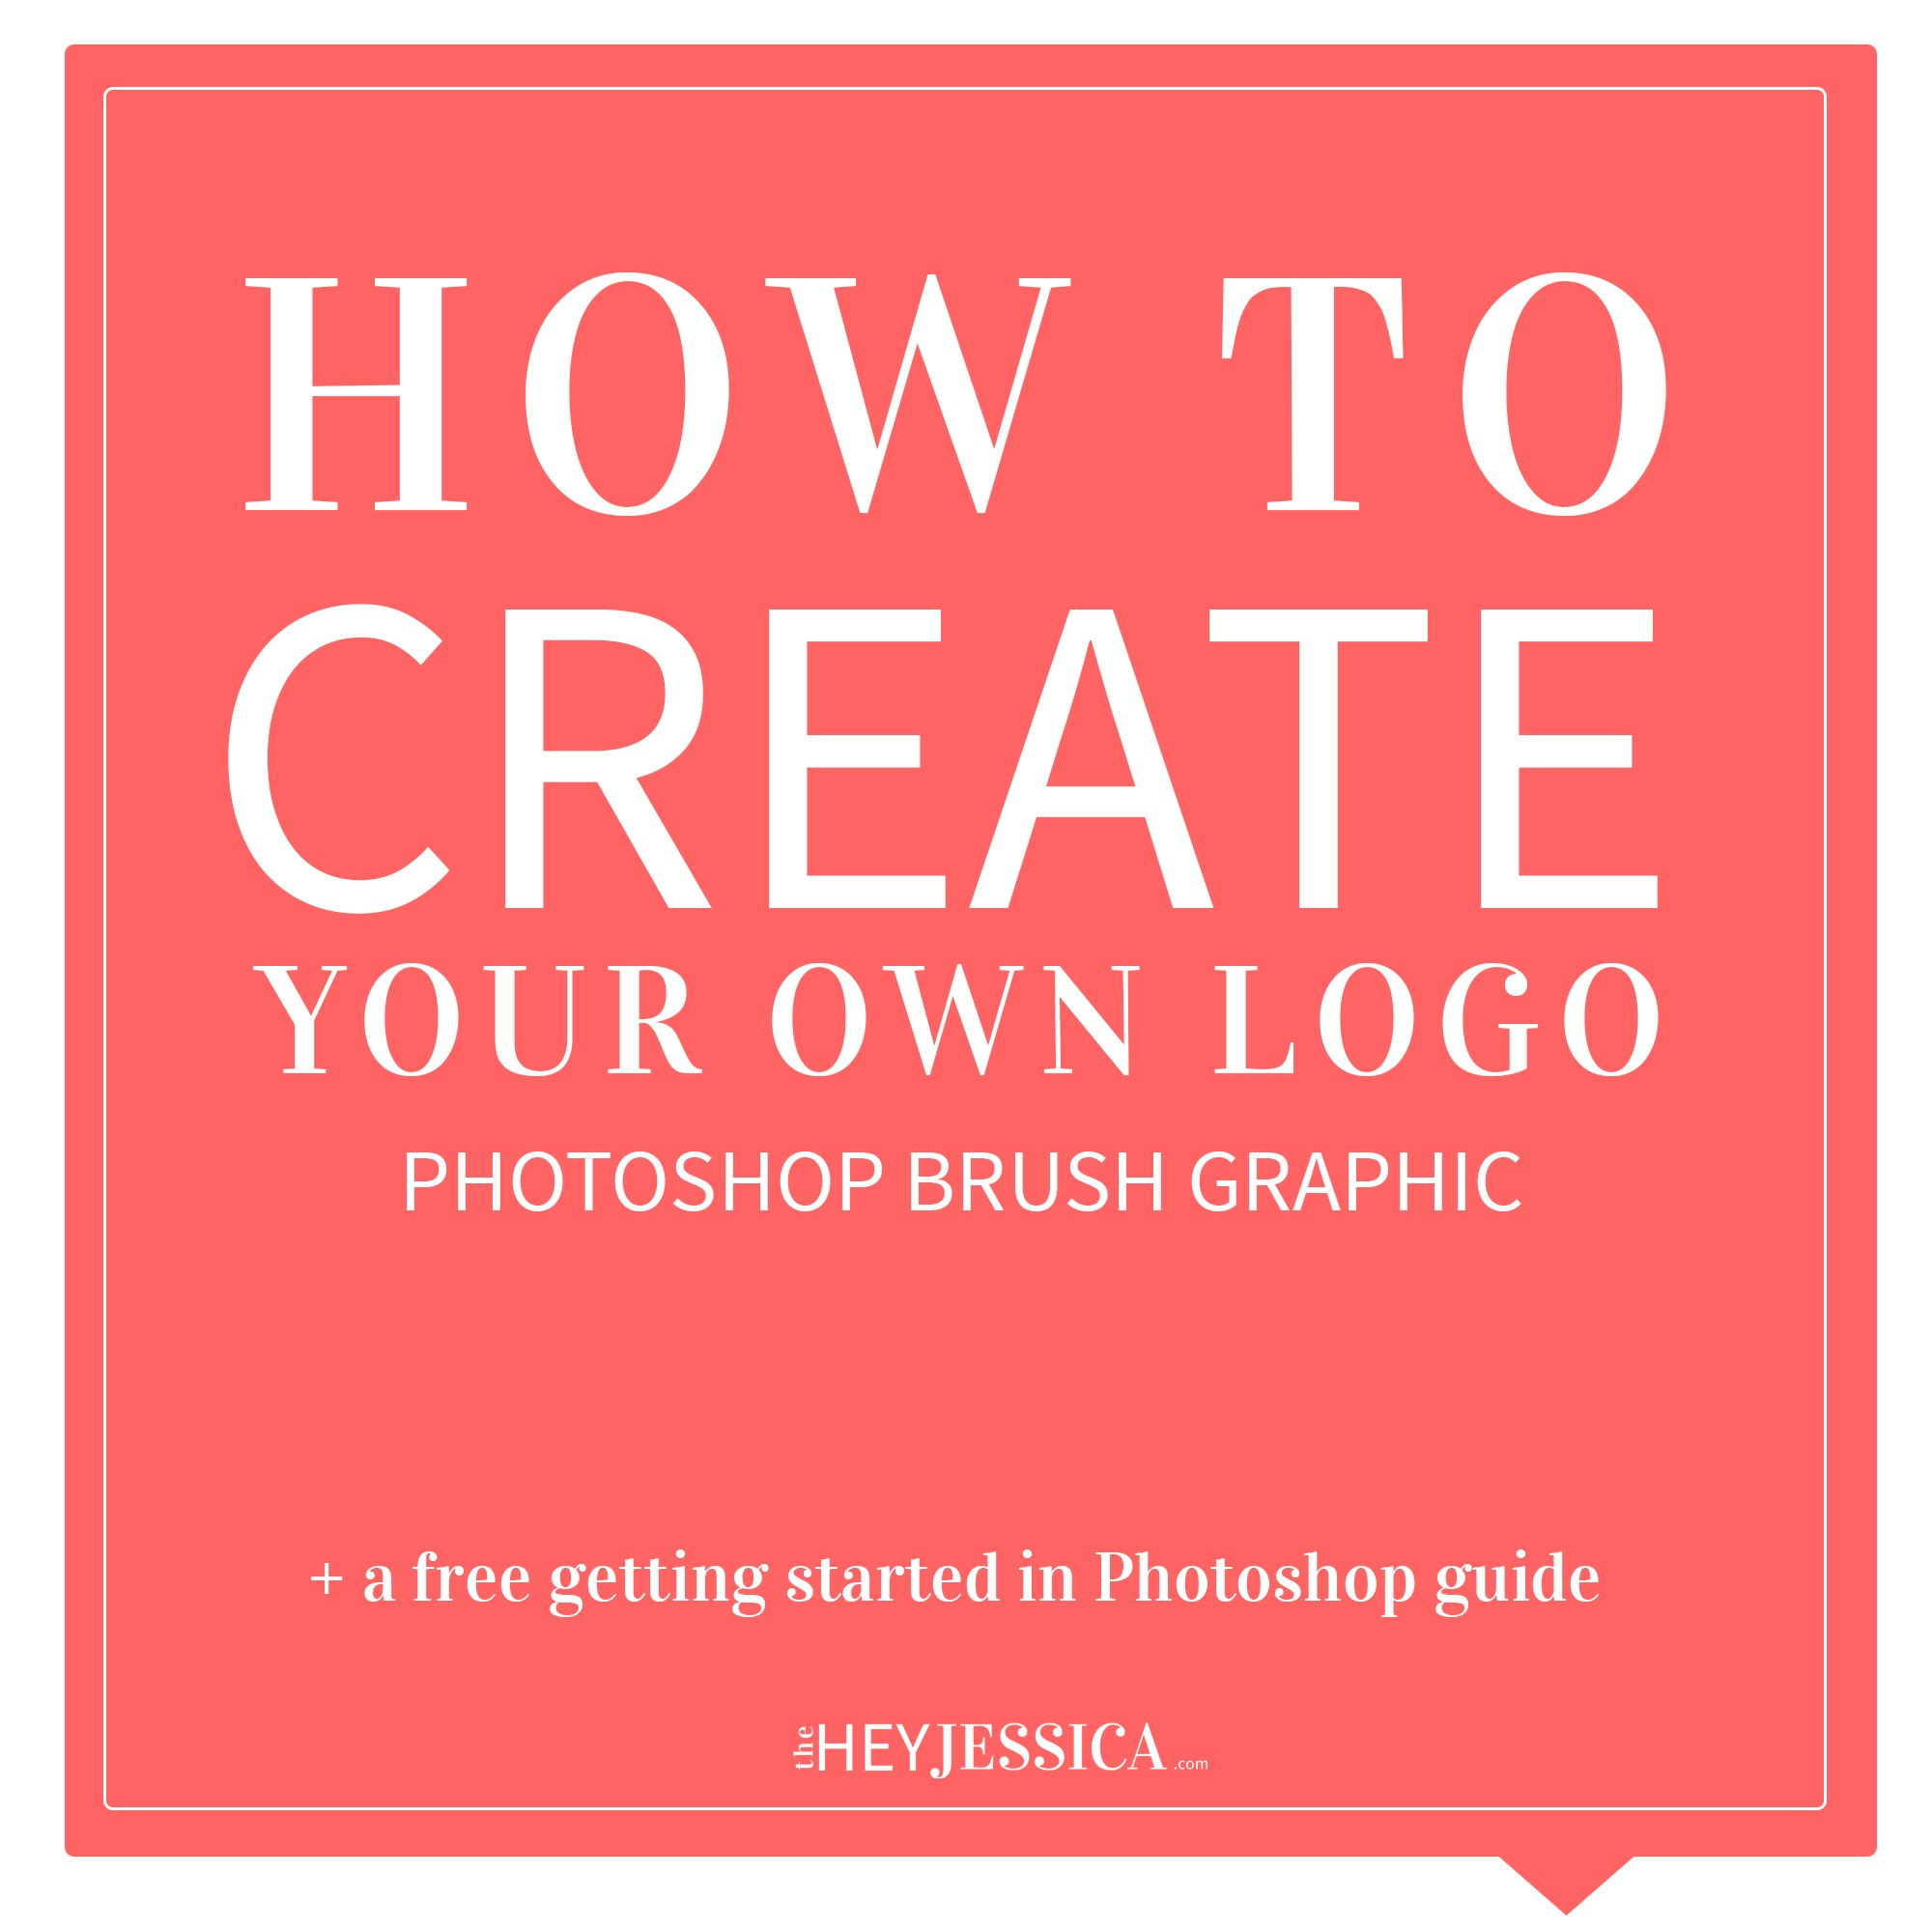 How to create a photoshop brush hey jessica for Draw my own logo